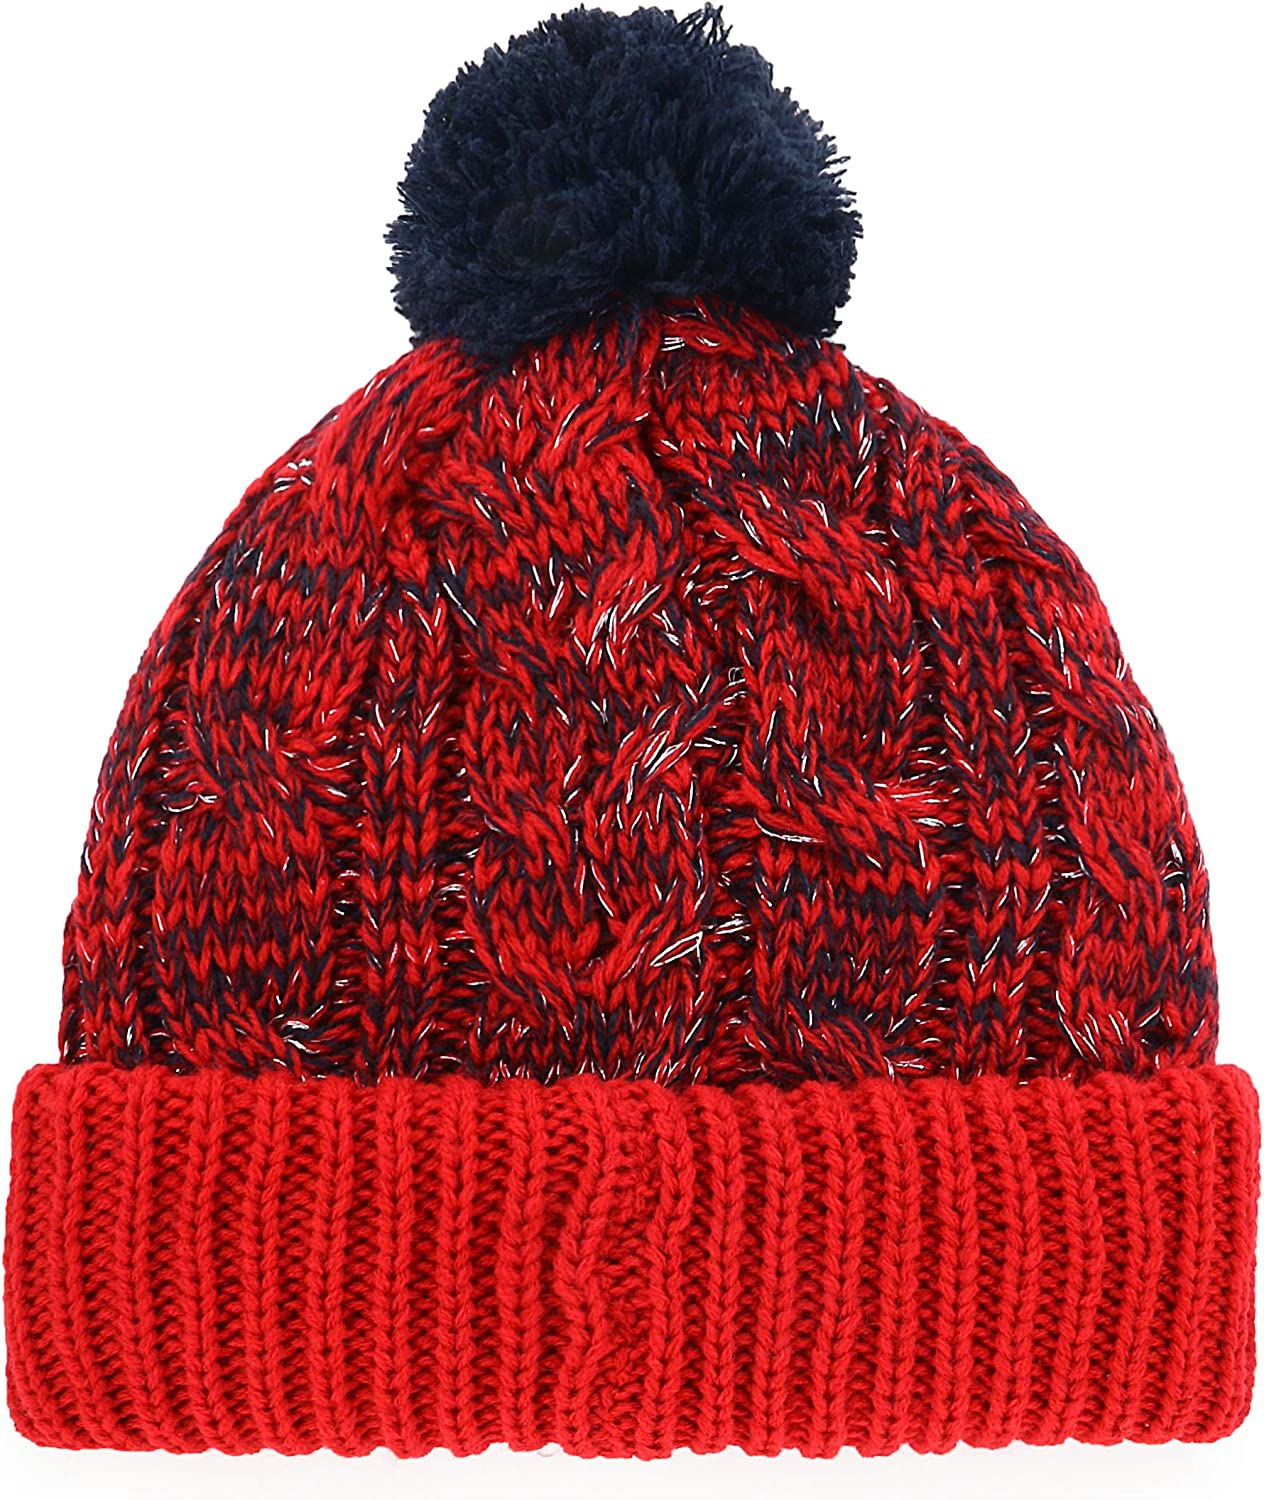 OTS Womens Brilyn Cuff Knit Cap with Pom